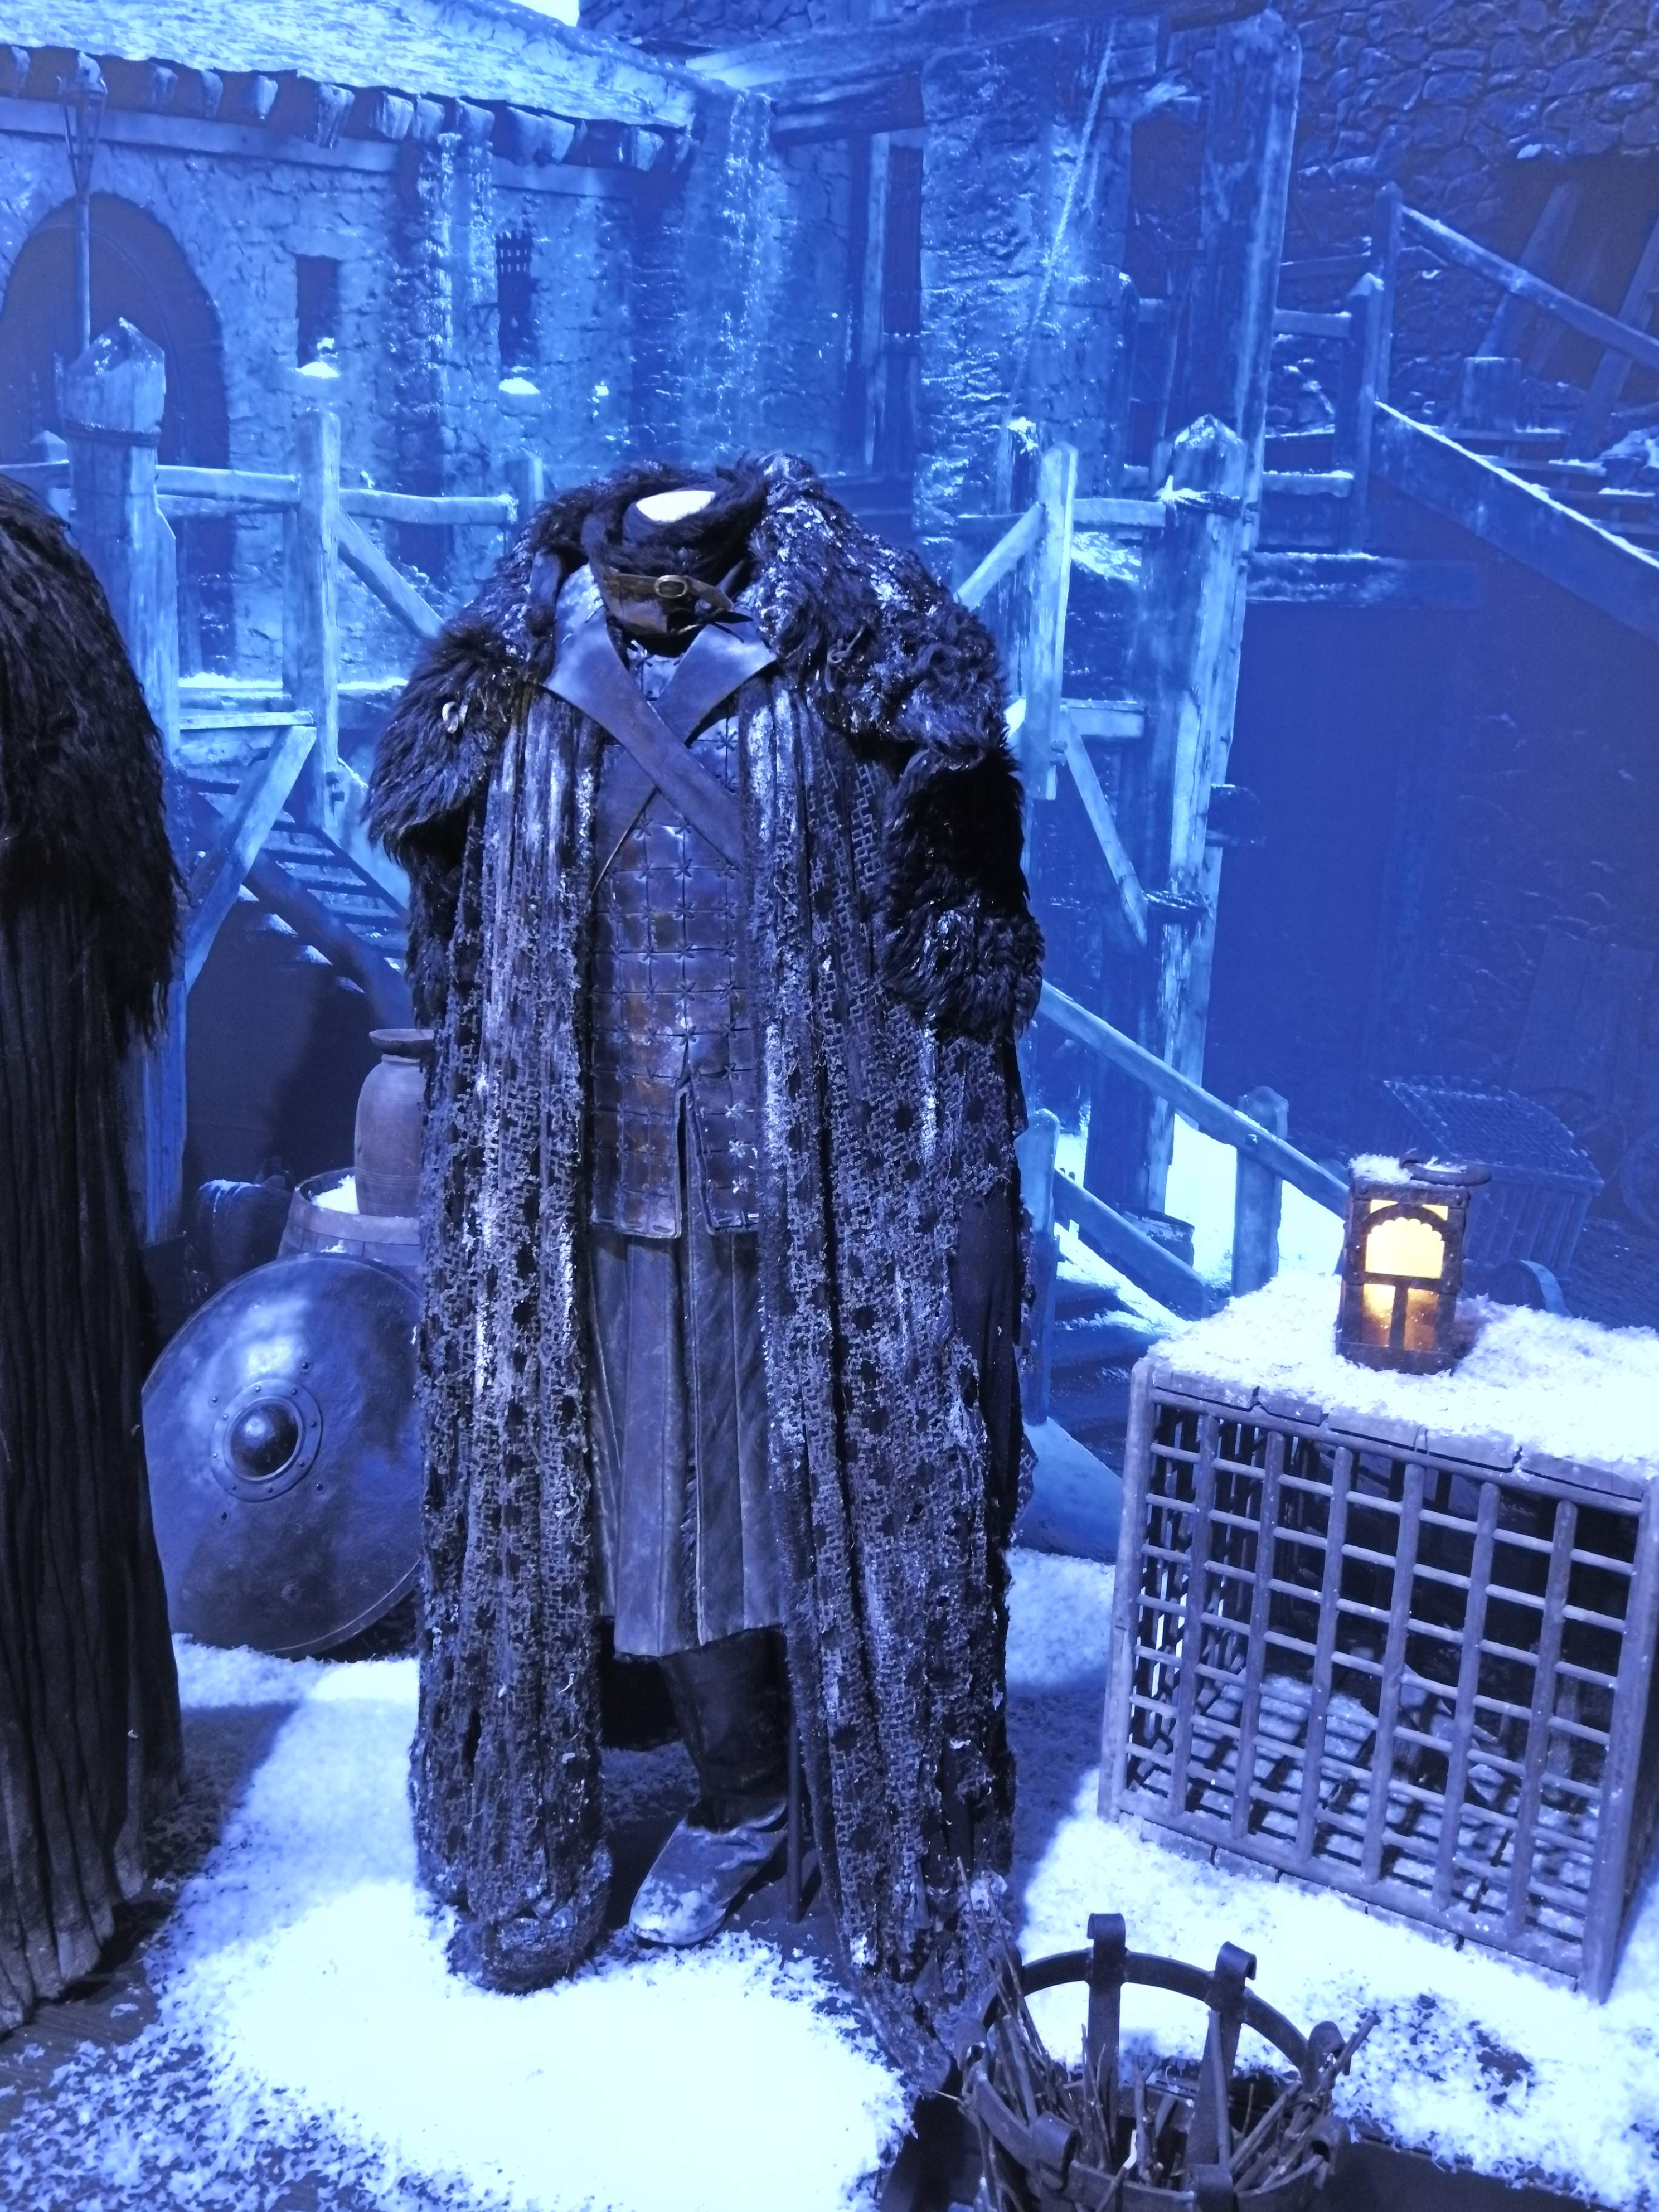 exposition game of thrones